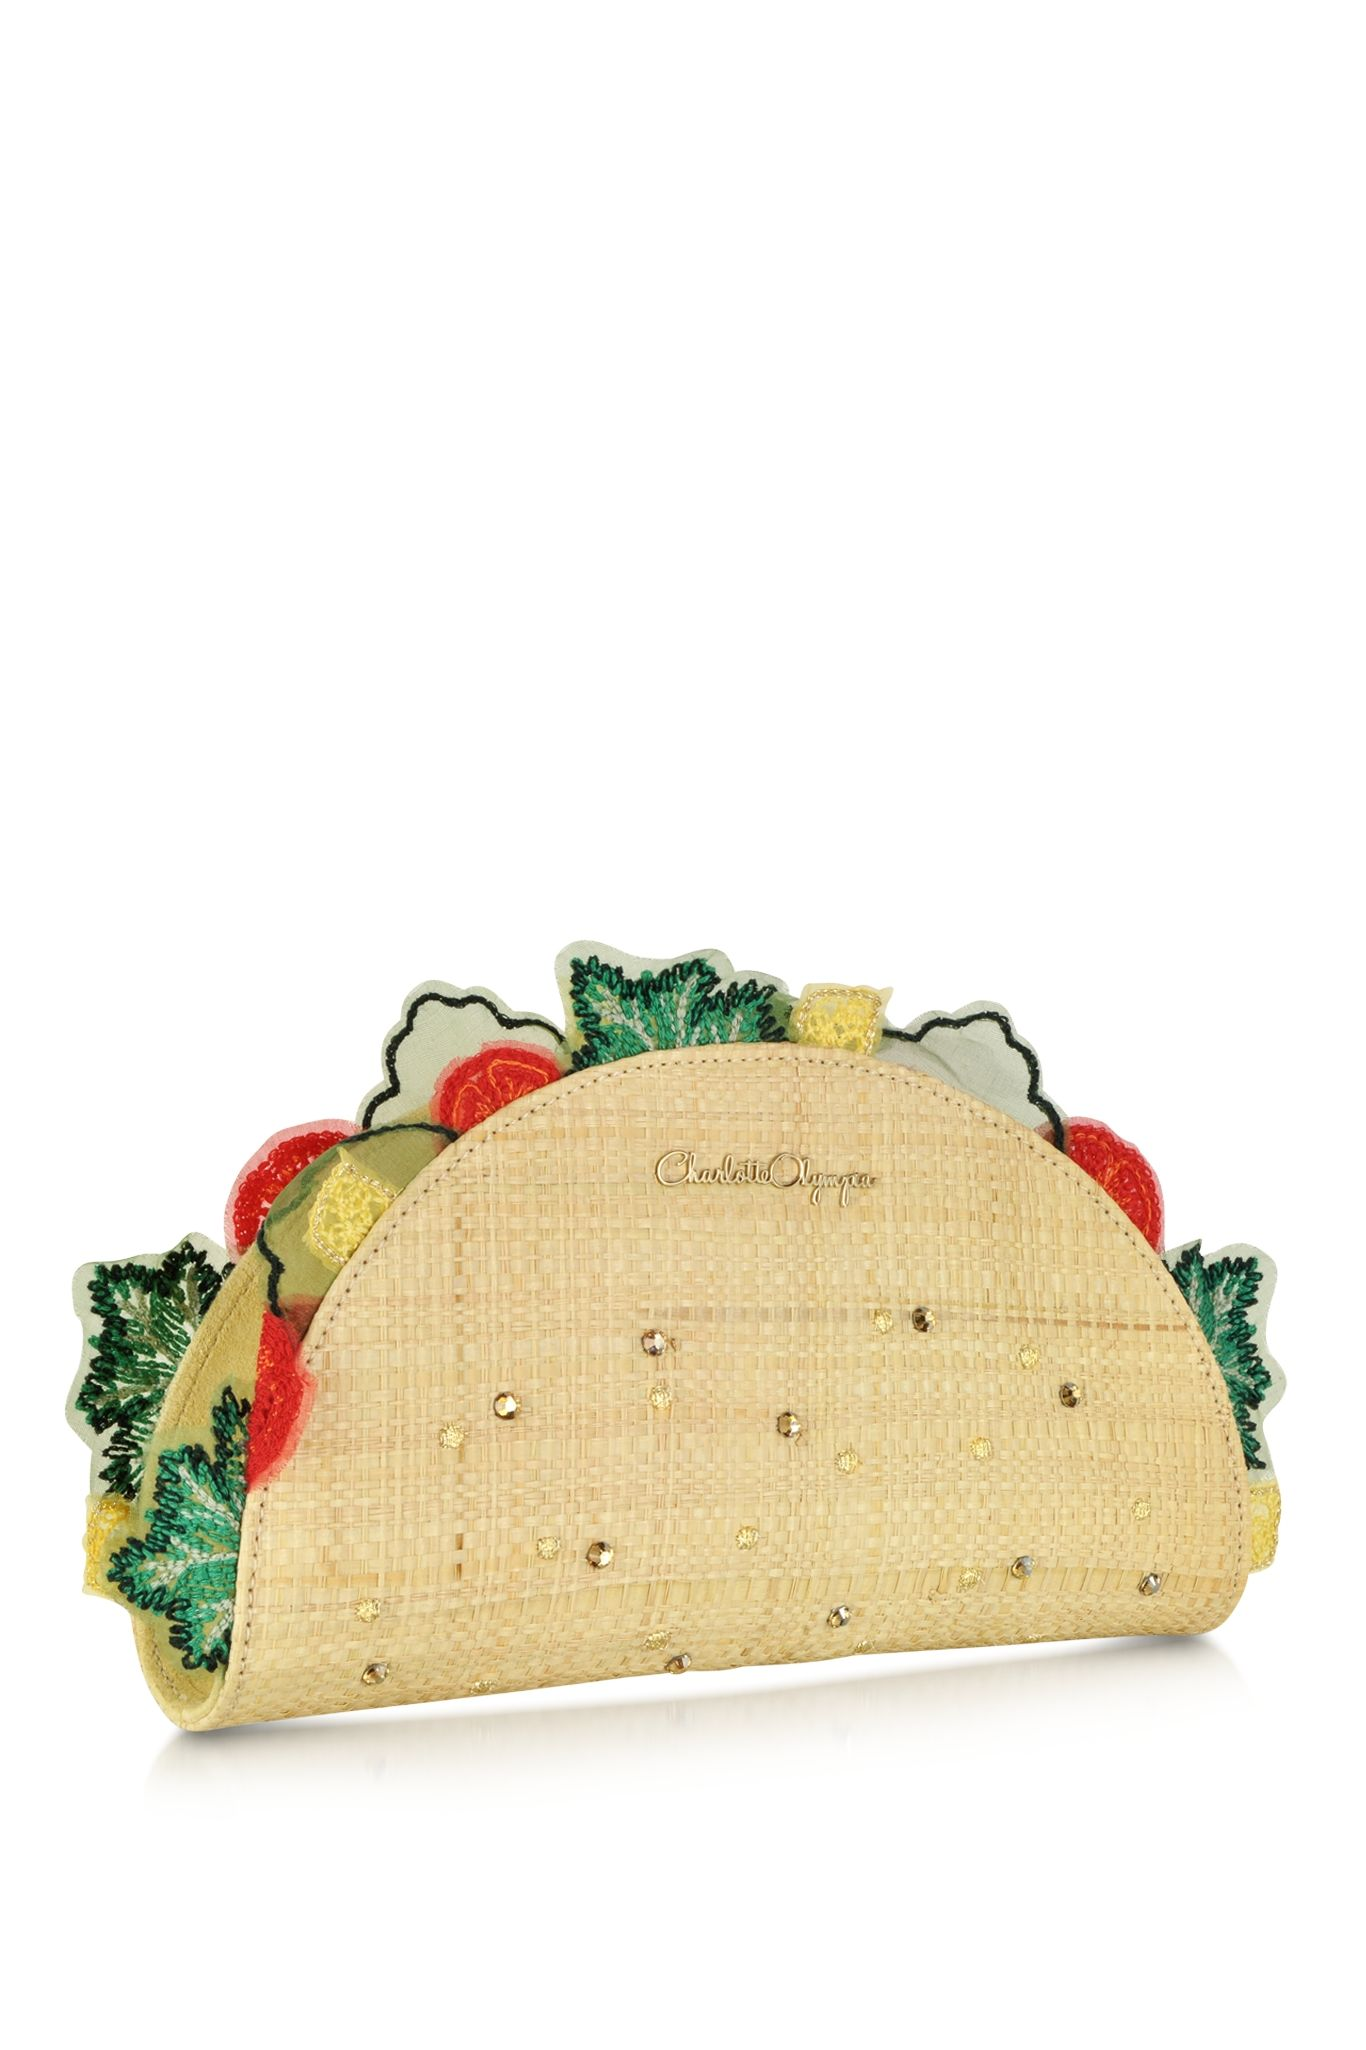 Charlotte Olympia Taqueria Clutch Preview Images